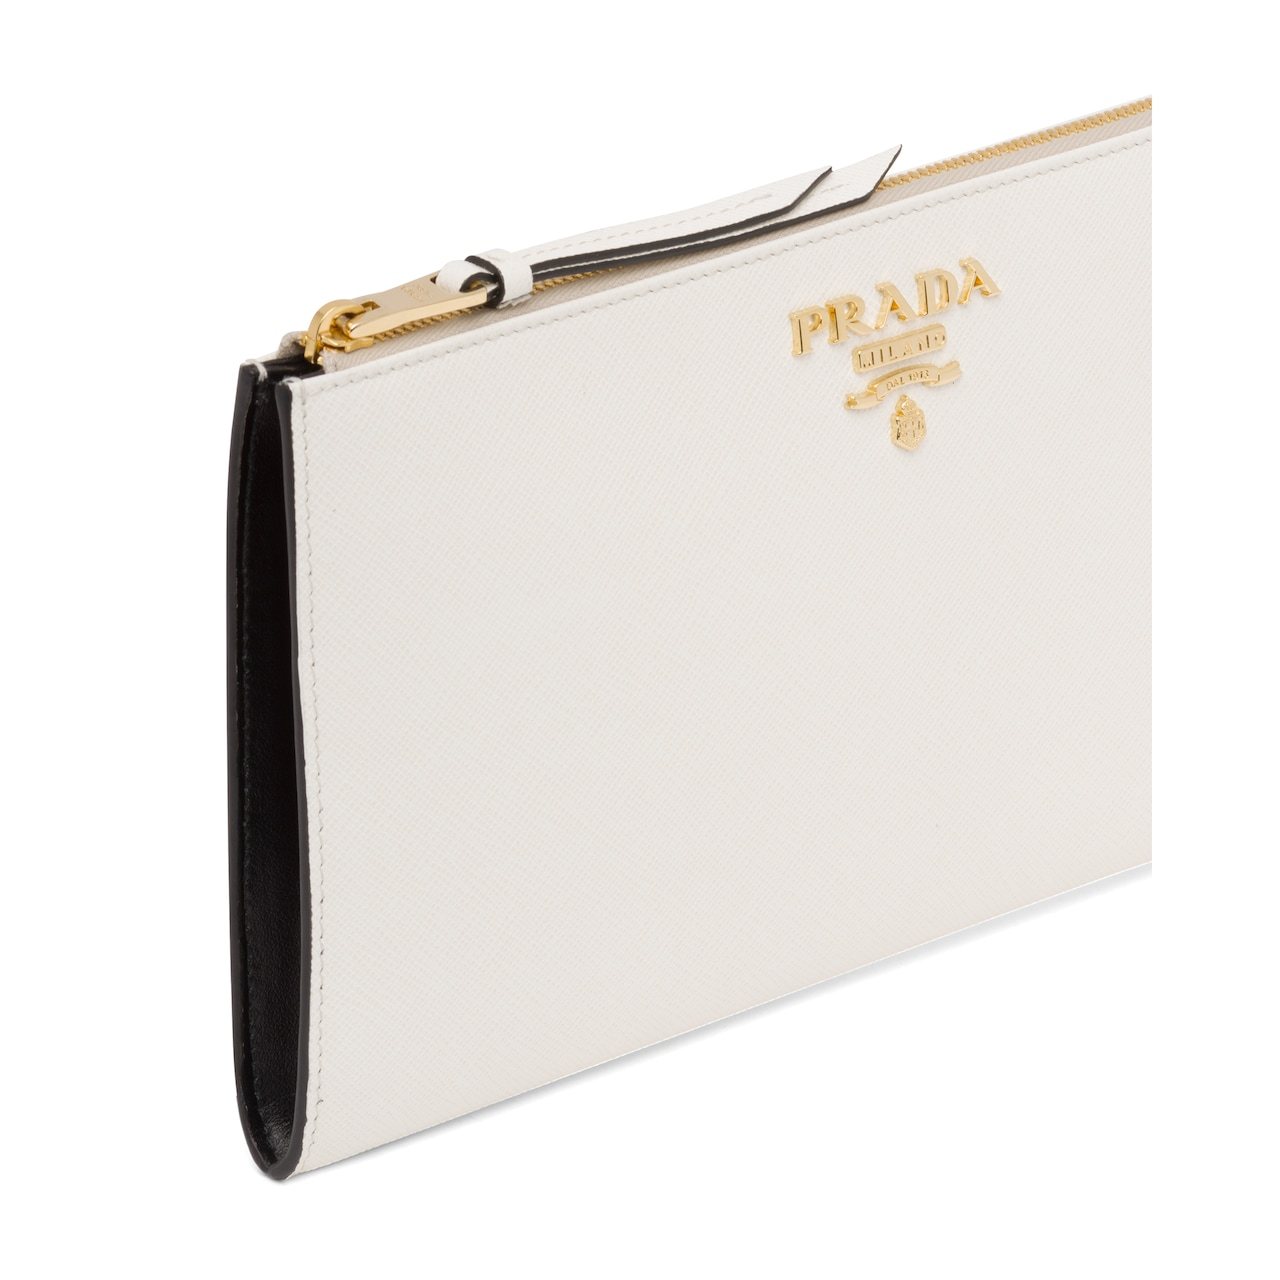 Prada Saffiano leather pouch 6